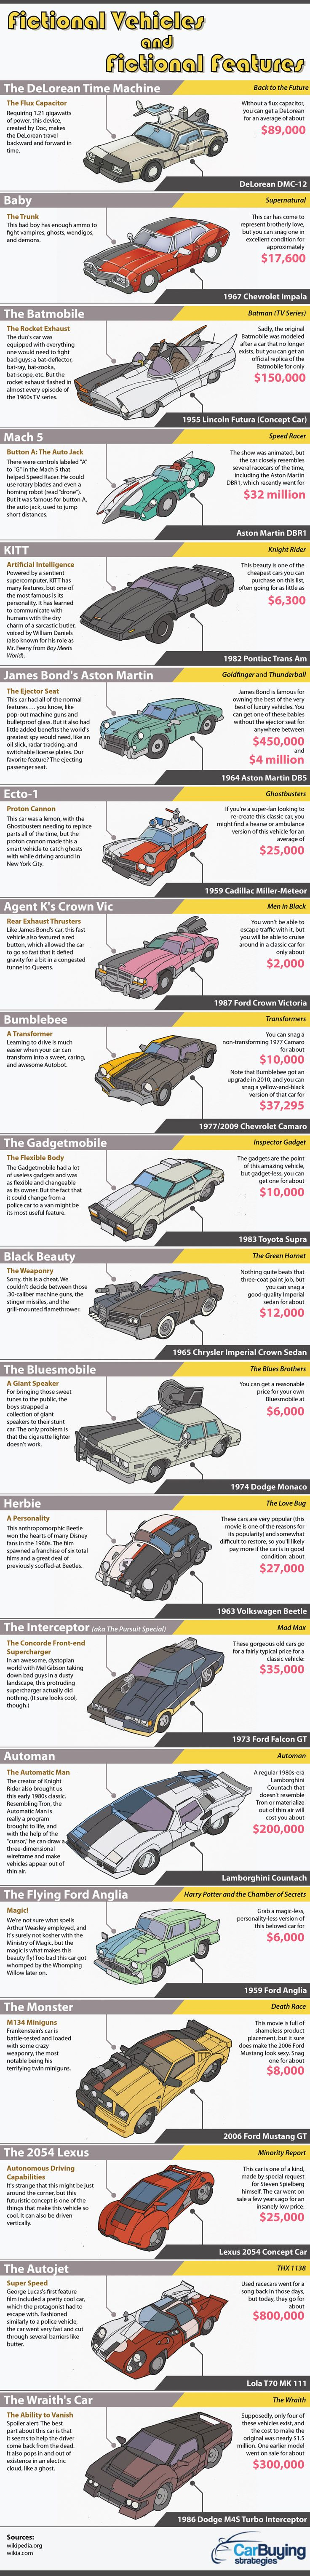 Fictional Cars and Fictional Features #Infographic #Cars